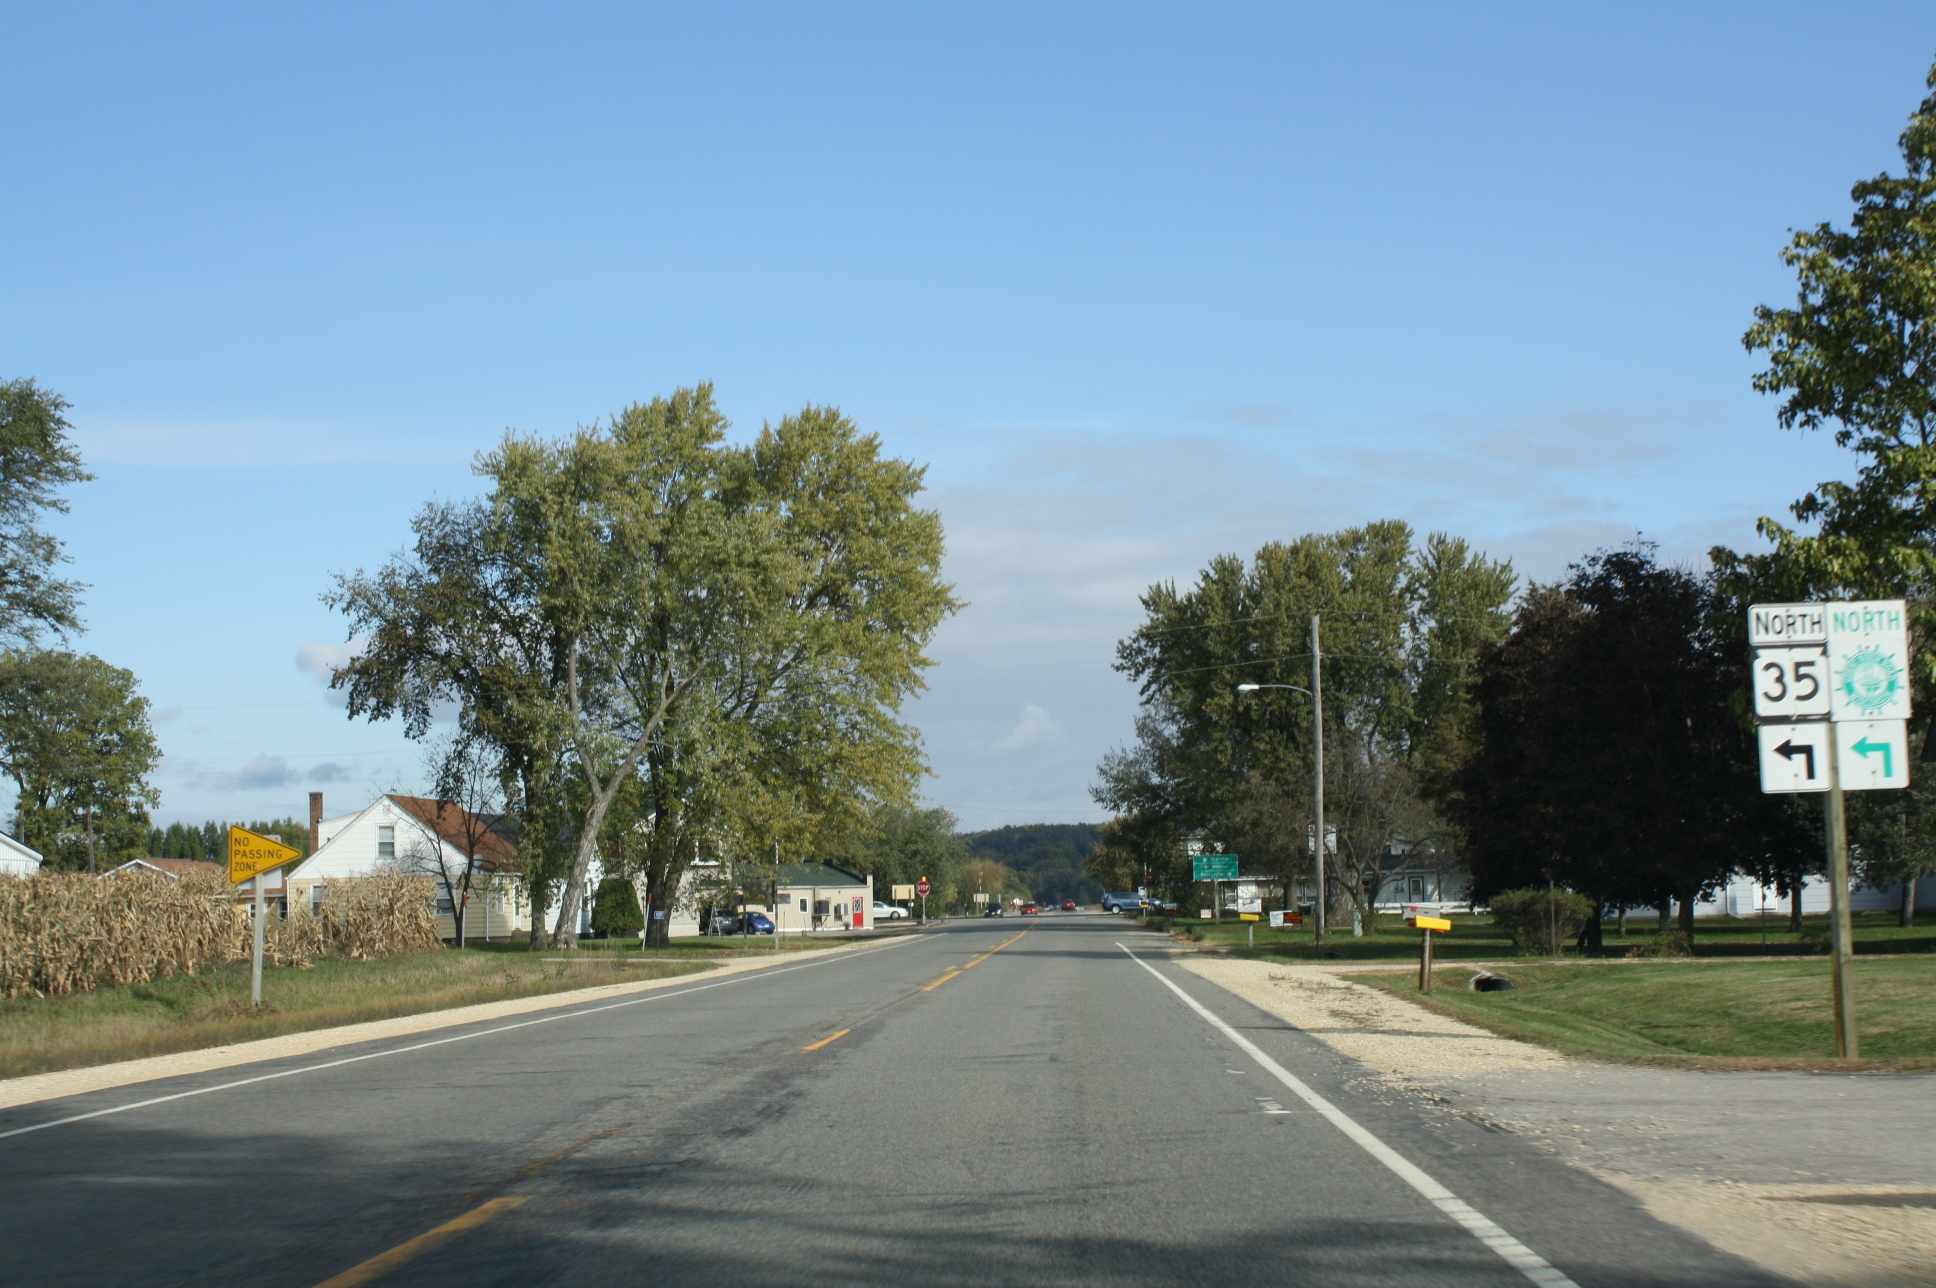 trempealeau county single women Here's where you can meet singles in whitehall, wisconsin our trempealeau county singles are in the 715 area code, and might live in these or other zip codes: 54773 personals our trempealeau county singles are in the 715 area code, and might live in these or other zip codes: 54773 personals.